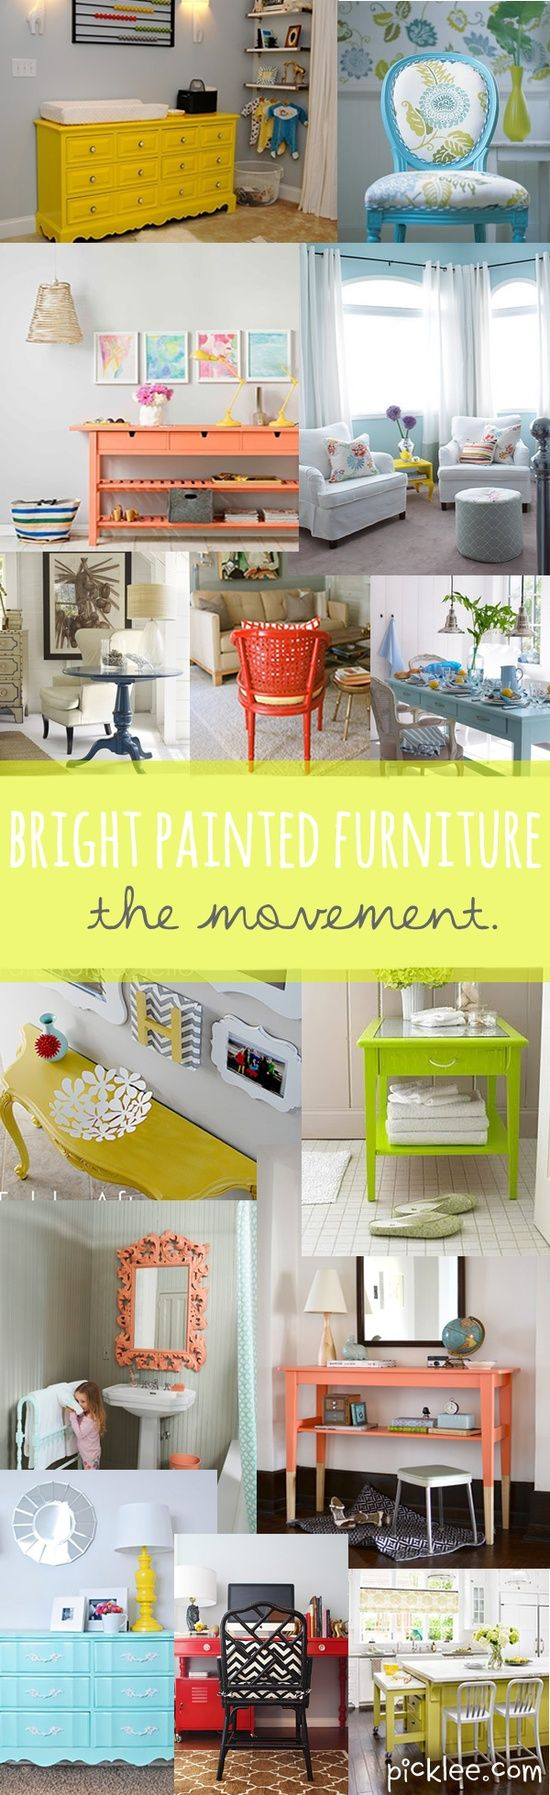 Best 20 Unpainted Furniture Ideas On Pinterest Picnic Images Childrens Art And Mirrors And